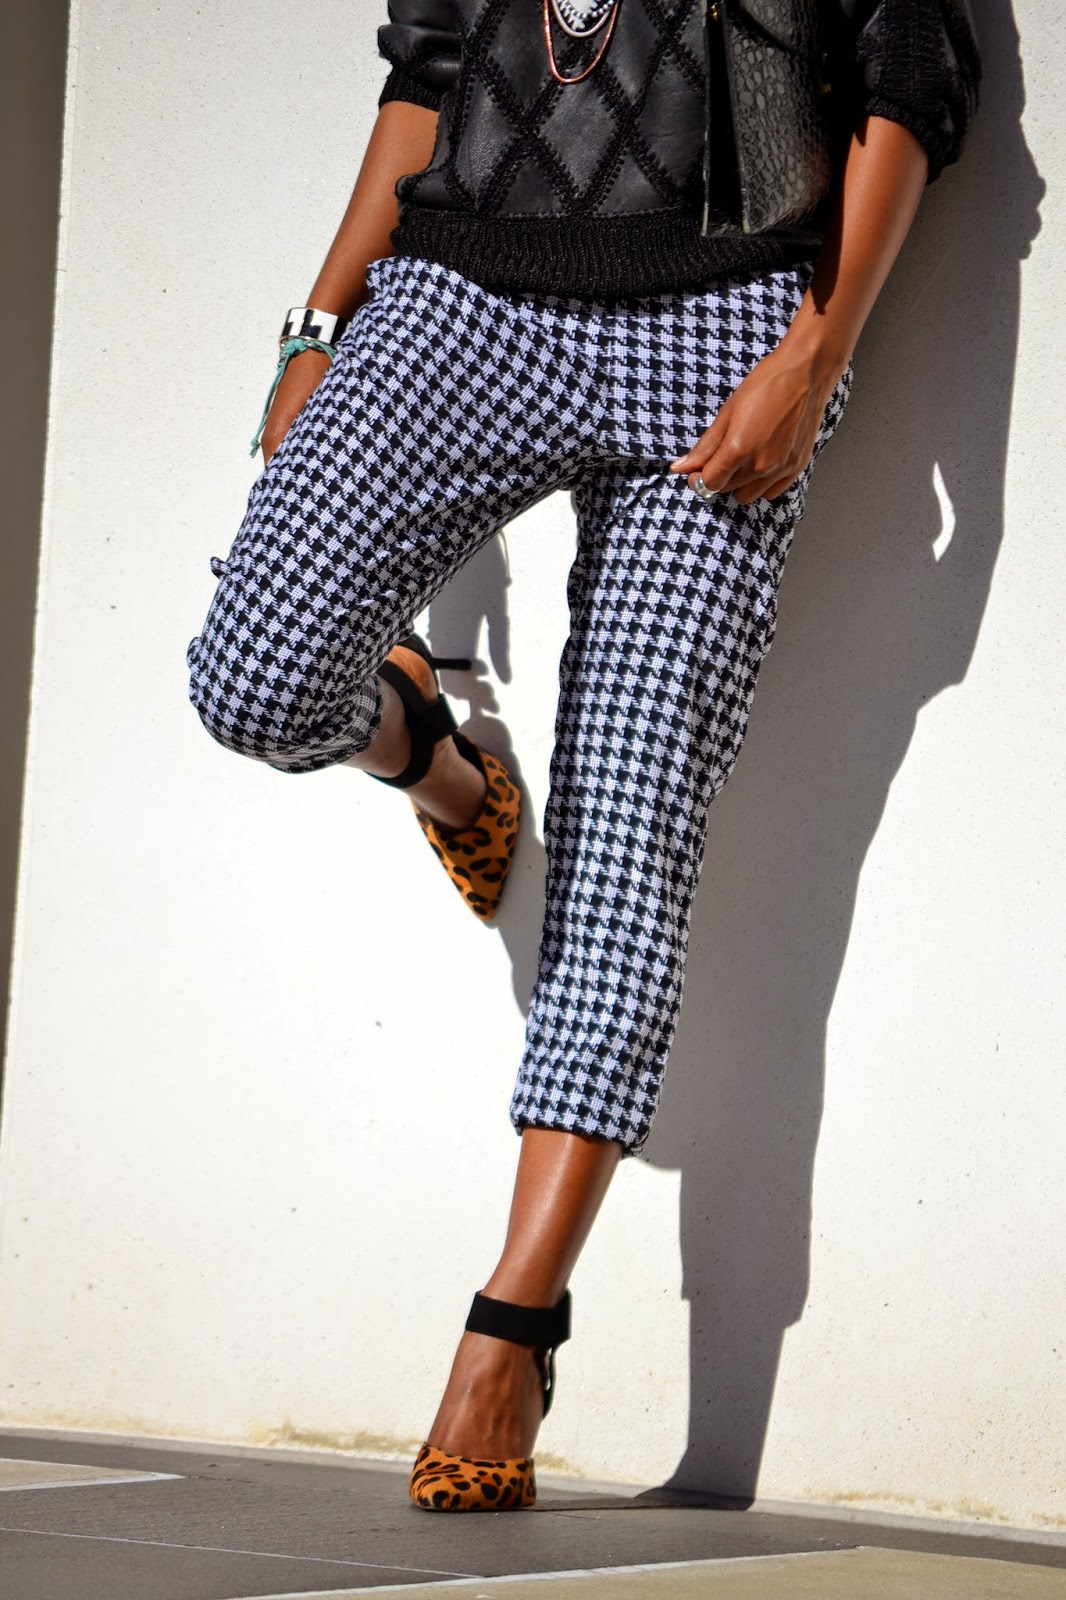 Wearing Target houndstooth pants and Steve Madden Leopard pumps